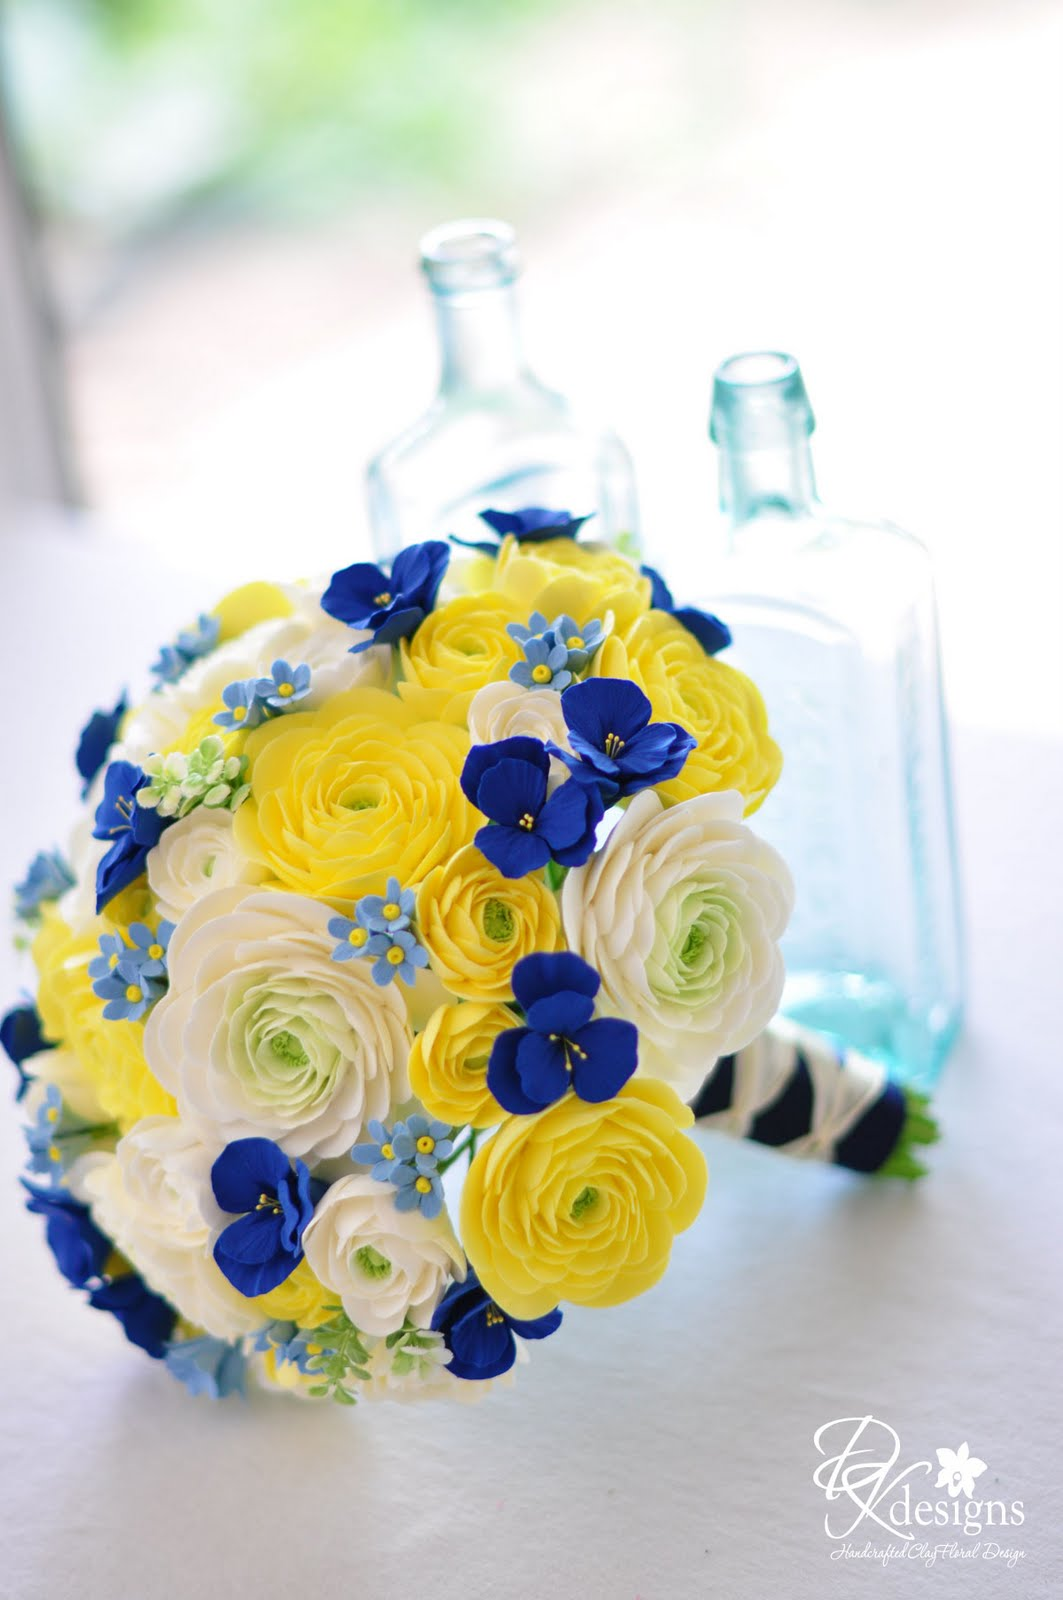 Blue And Yellow Bathroom Decor: DK Designs: Butter Yellow, Ivory And Blues